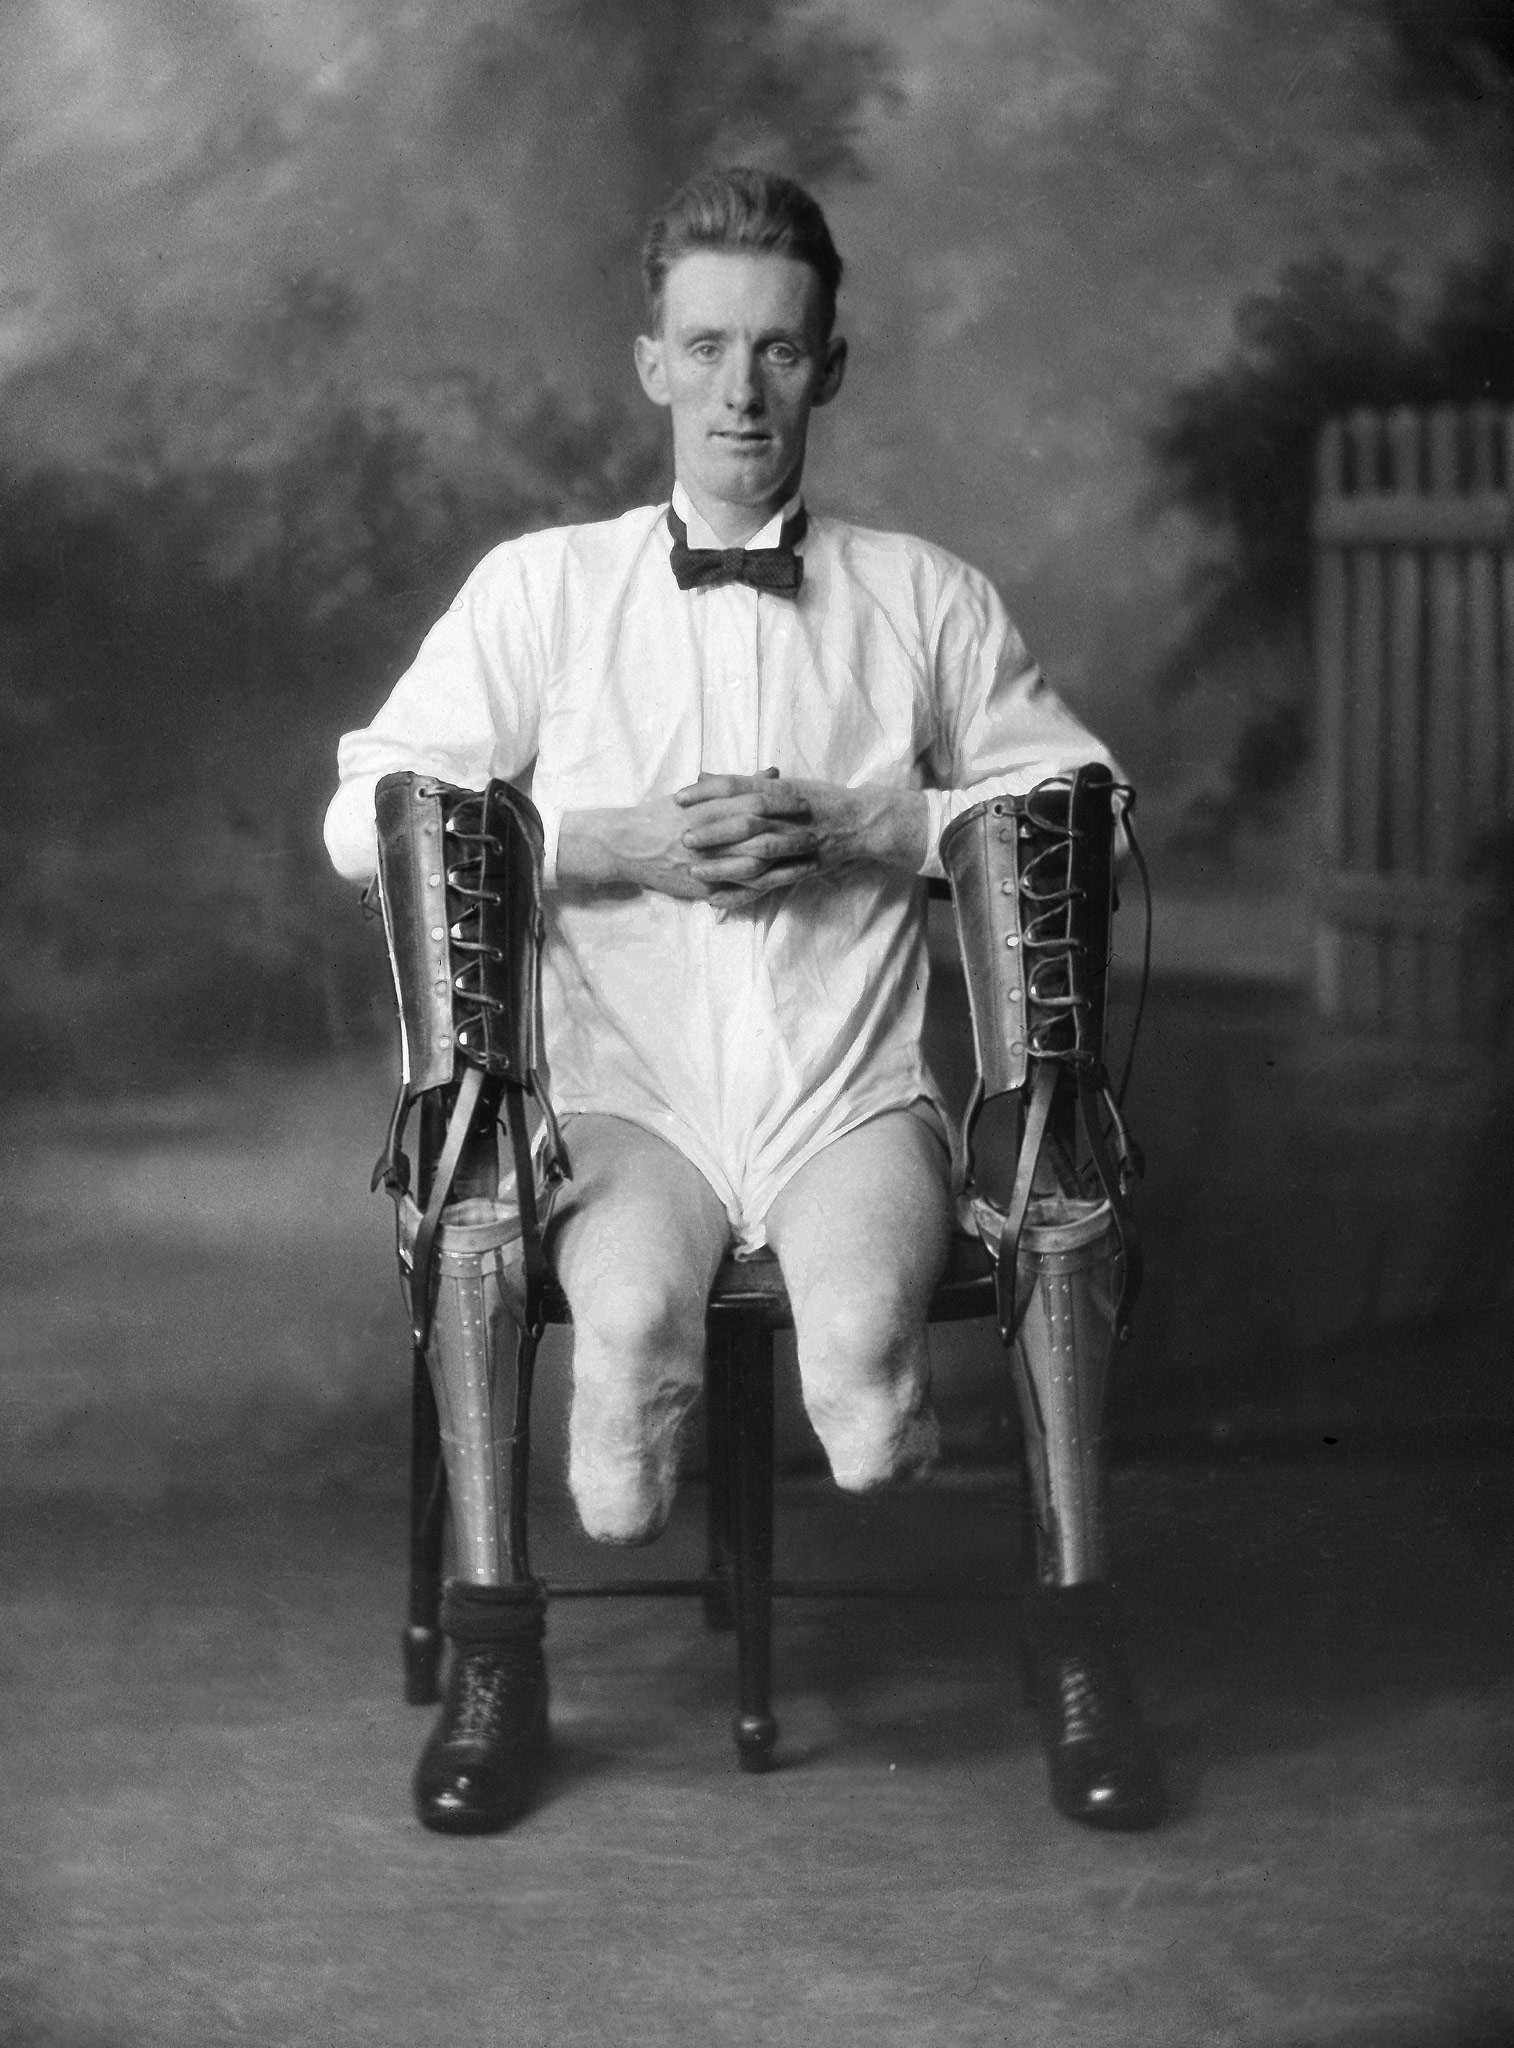 The same man seated with his legs off